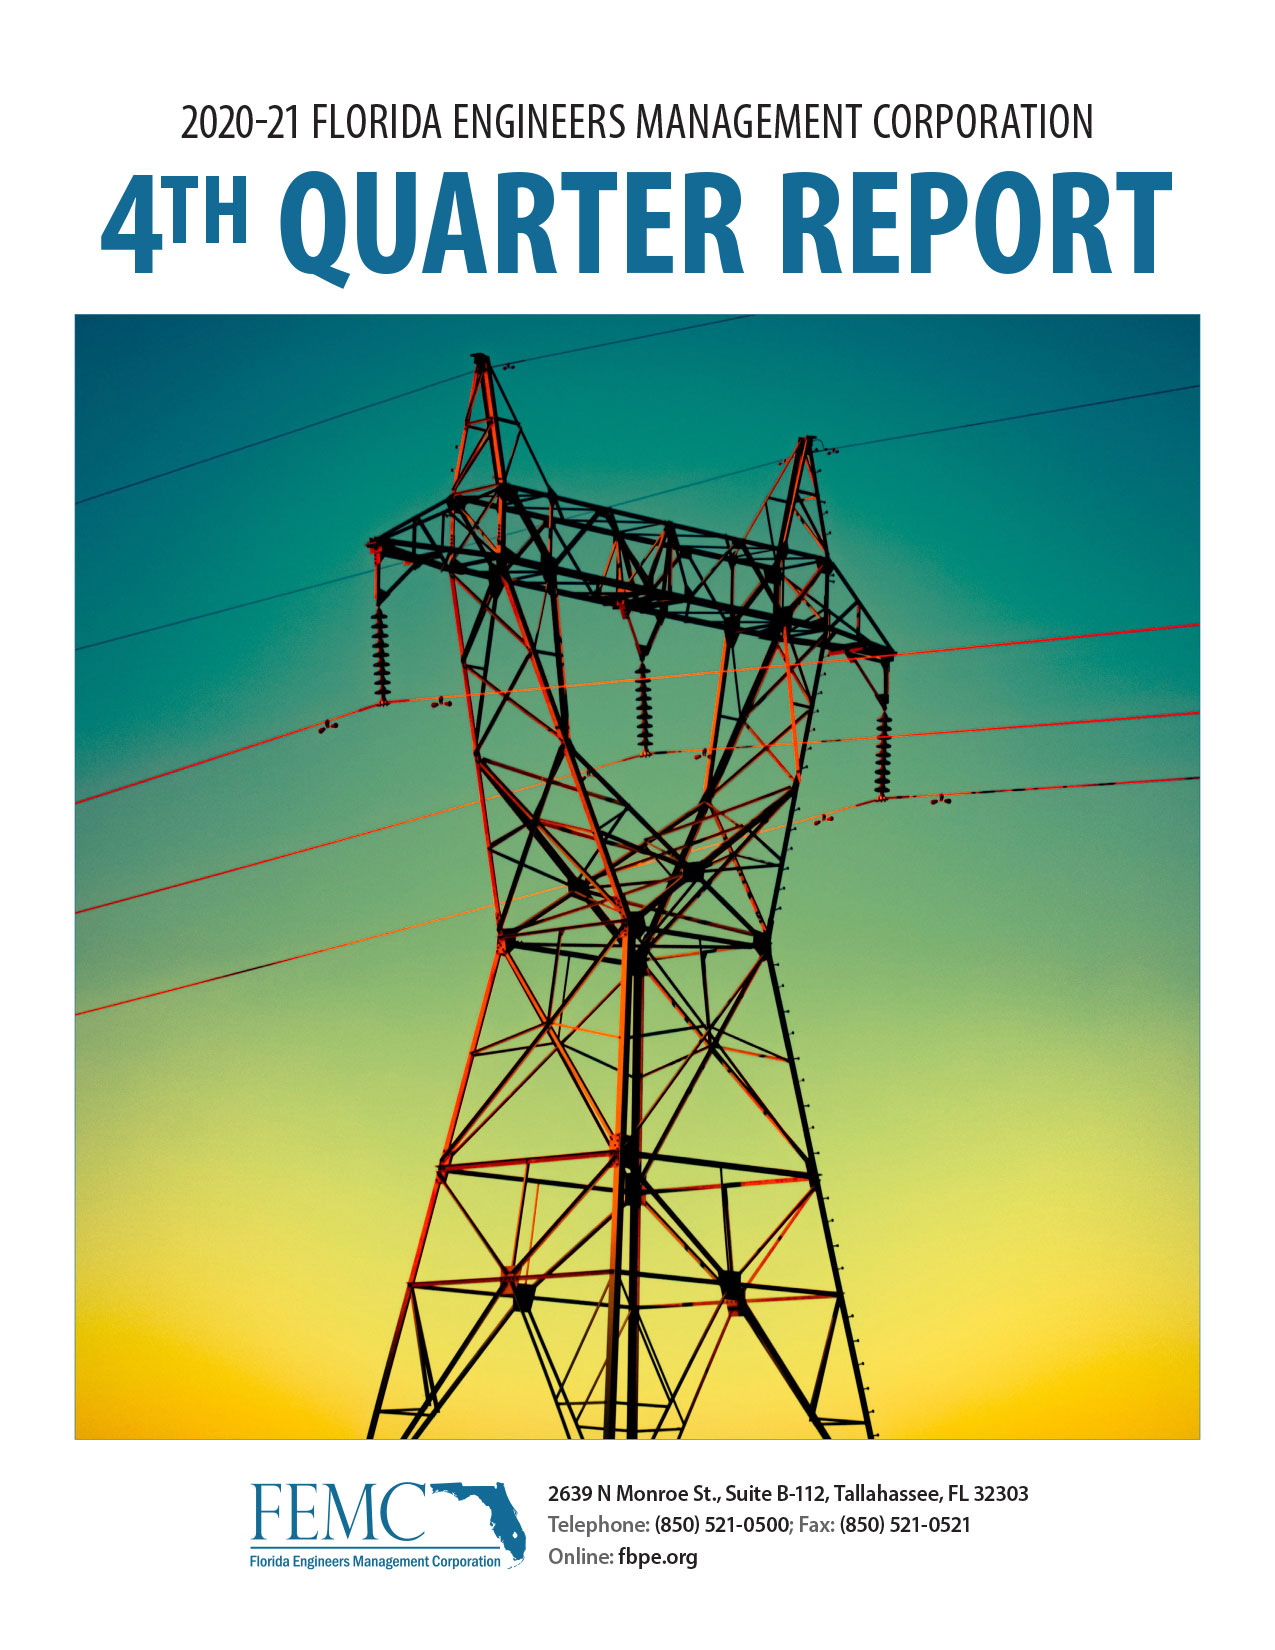 The cover of the 2020-21 Florida Engineers Management Corporation 4th Quarter Report